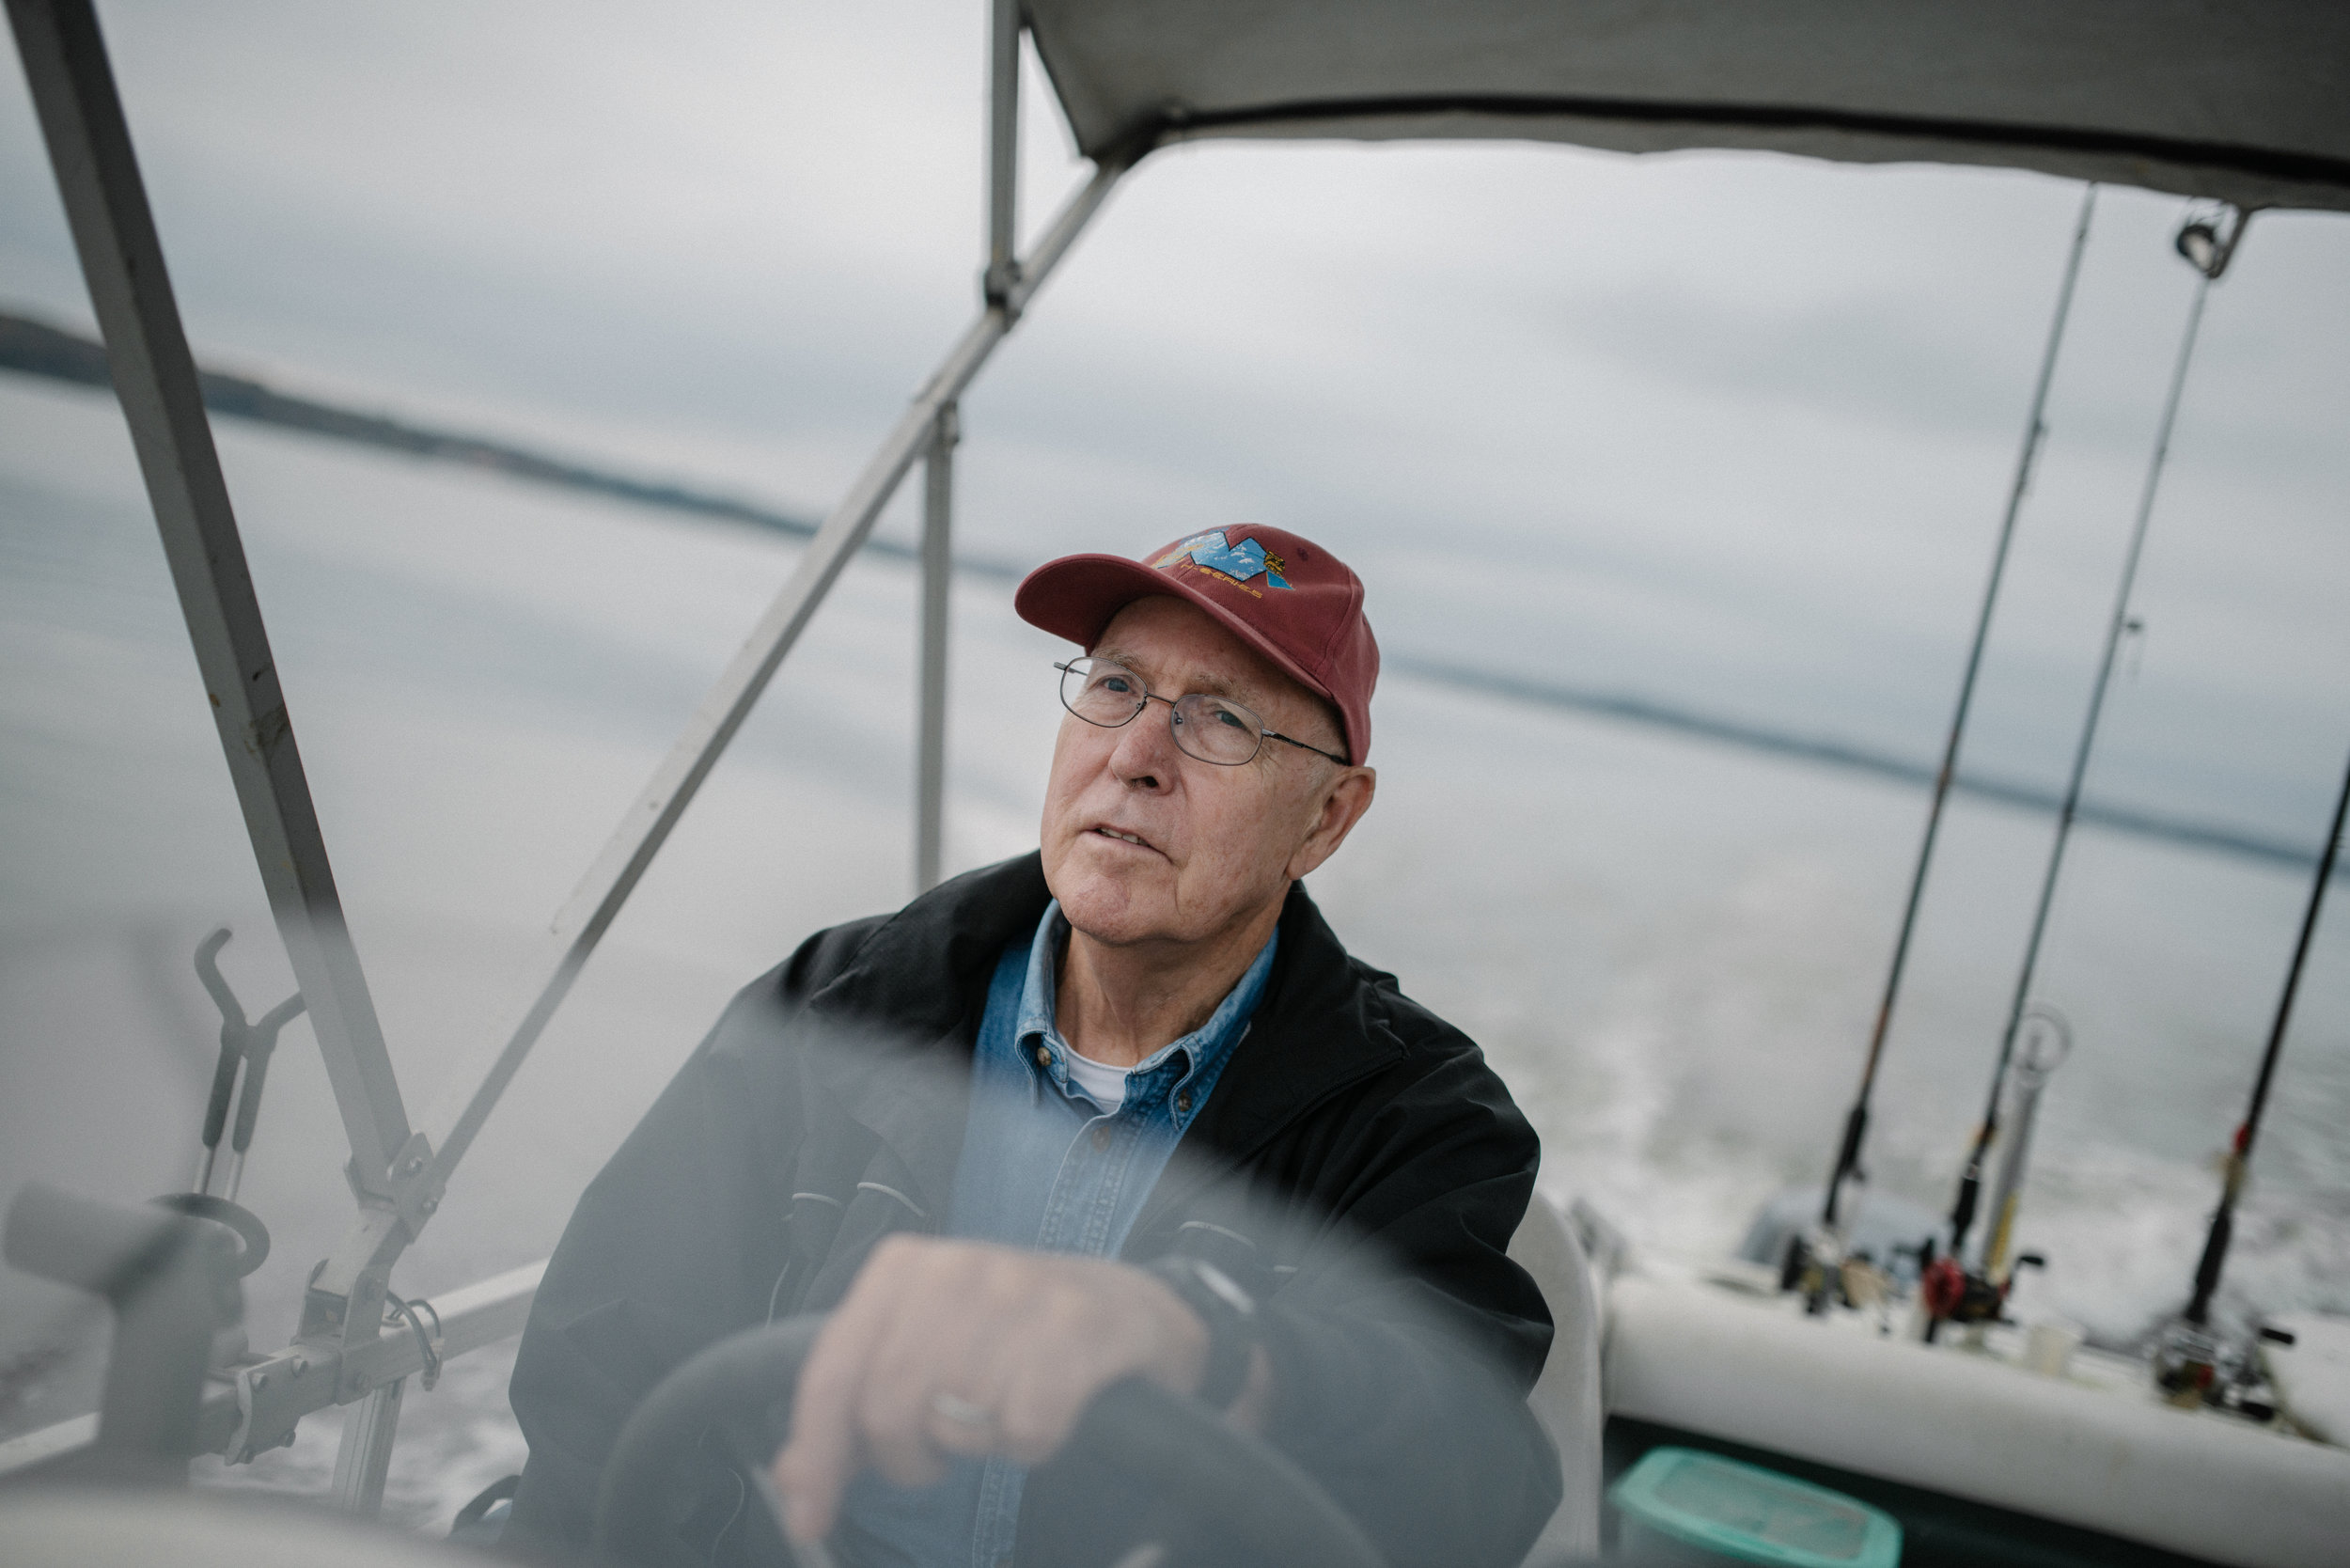 Thomas C. Field, 78, drives his boat through Lake Gaston on Wednesday, November 4th, 2015 in Littleton, North Carolina. Sailing and fishing are main reasons he moved near Lake Gaston after retiring.